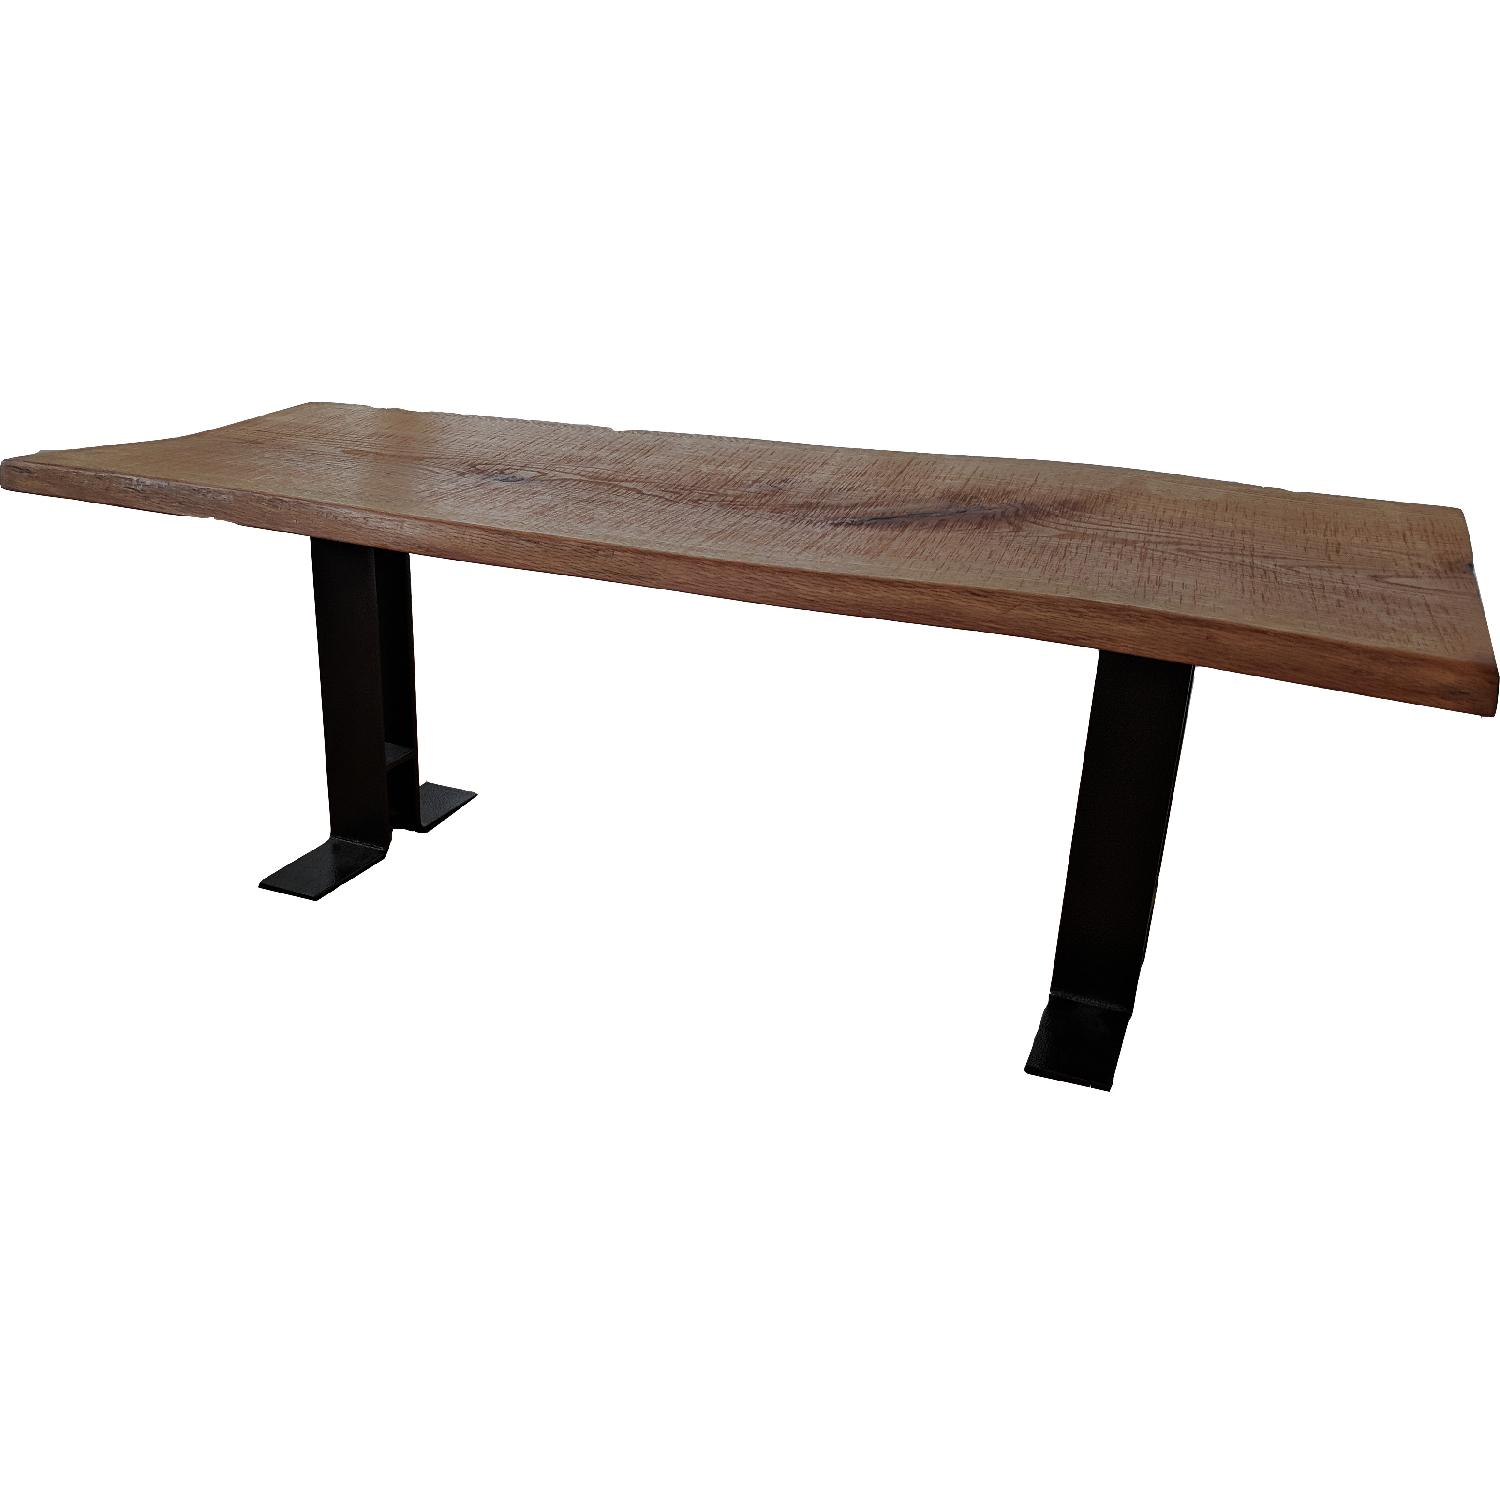 Handmade Oak Dining Table w/ 2 Matching Benches - image-1